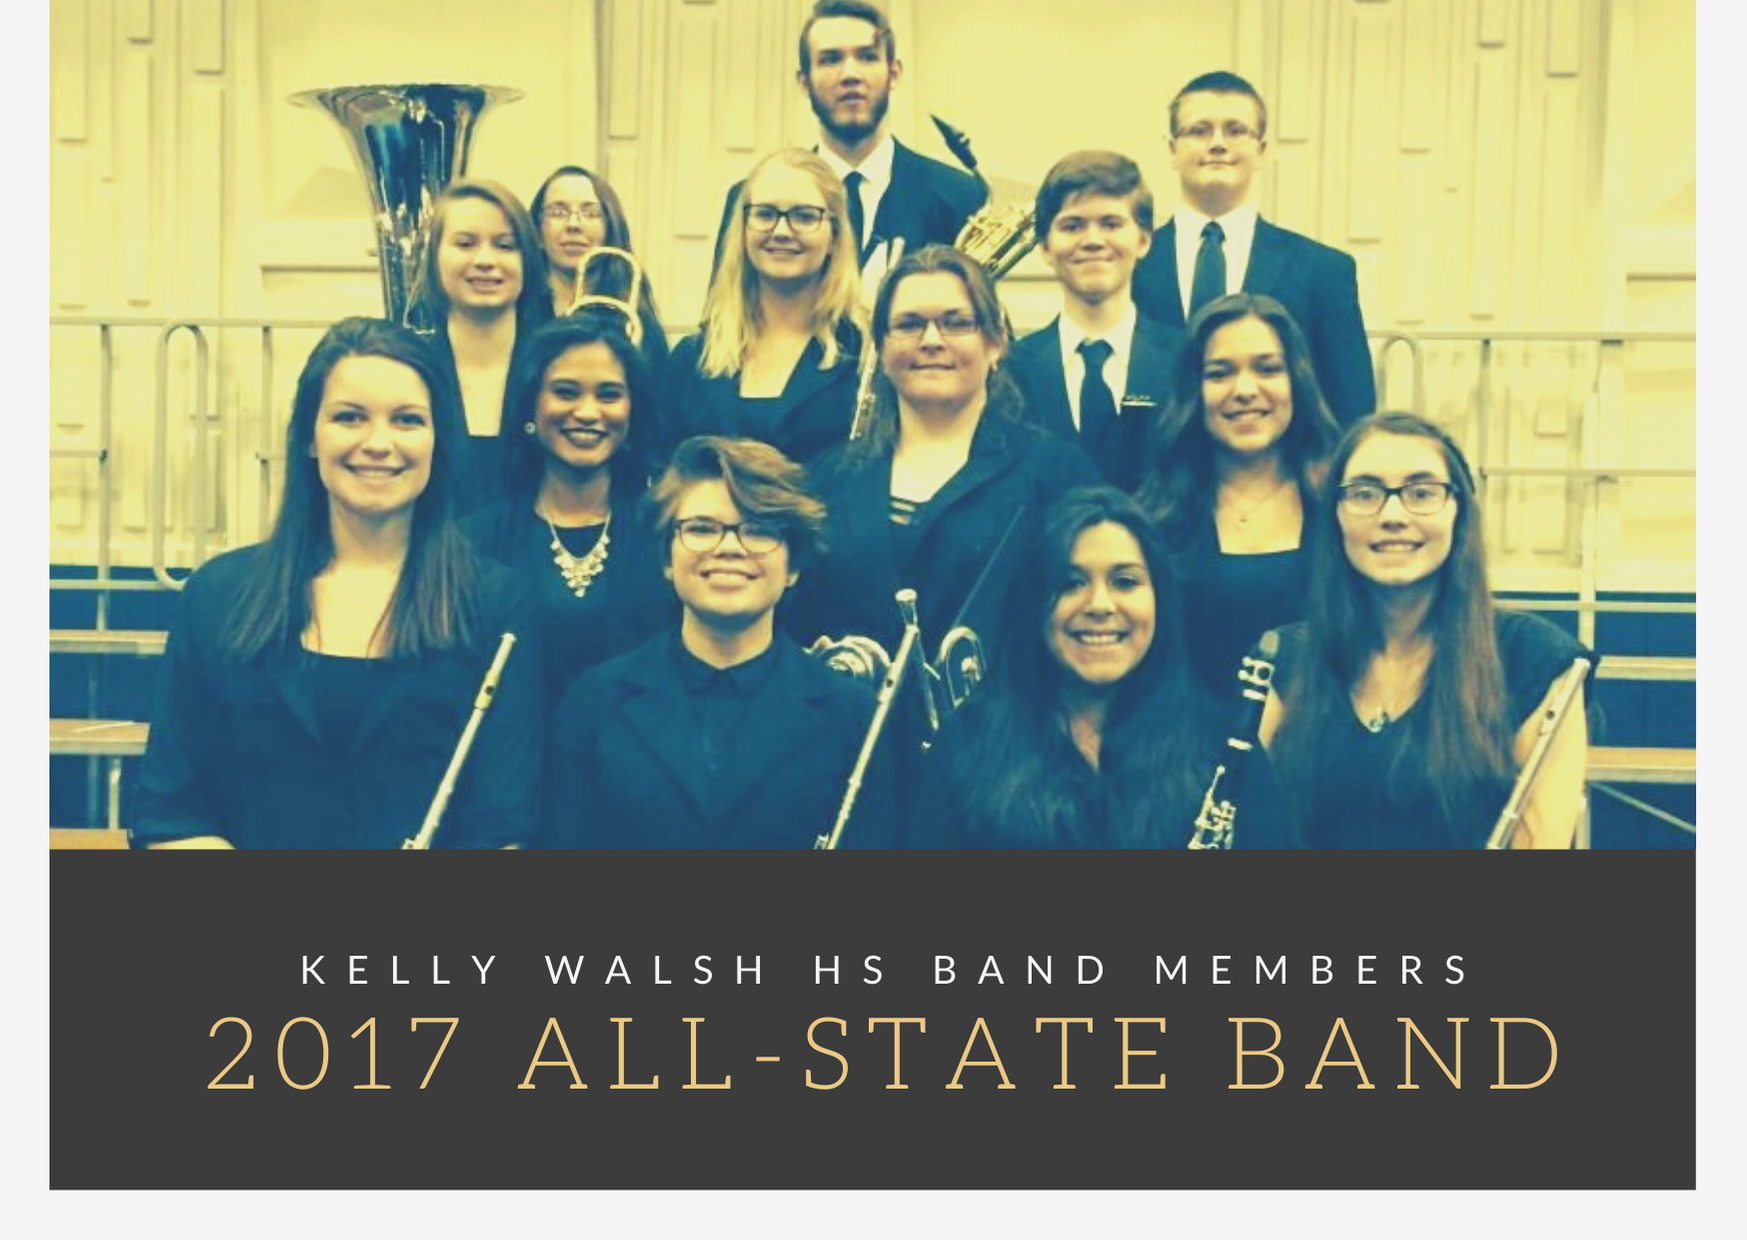 2017 All-State Band